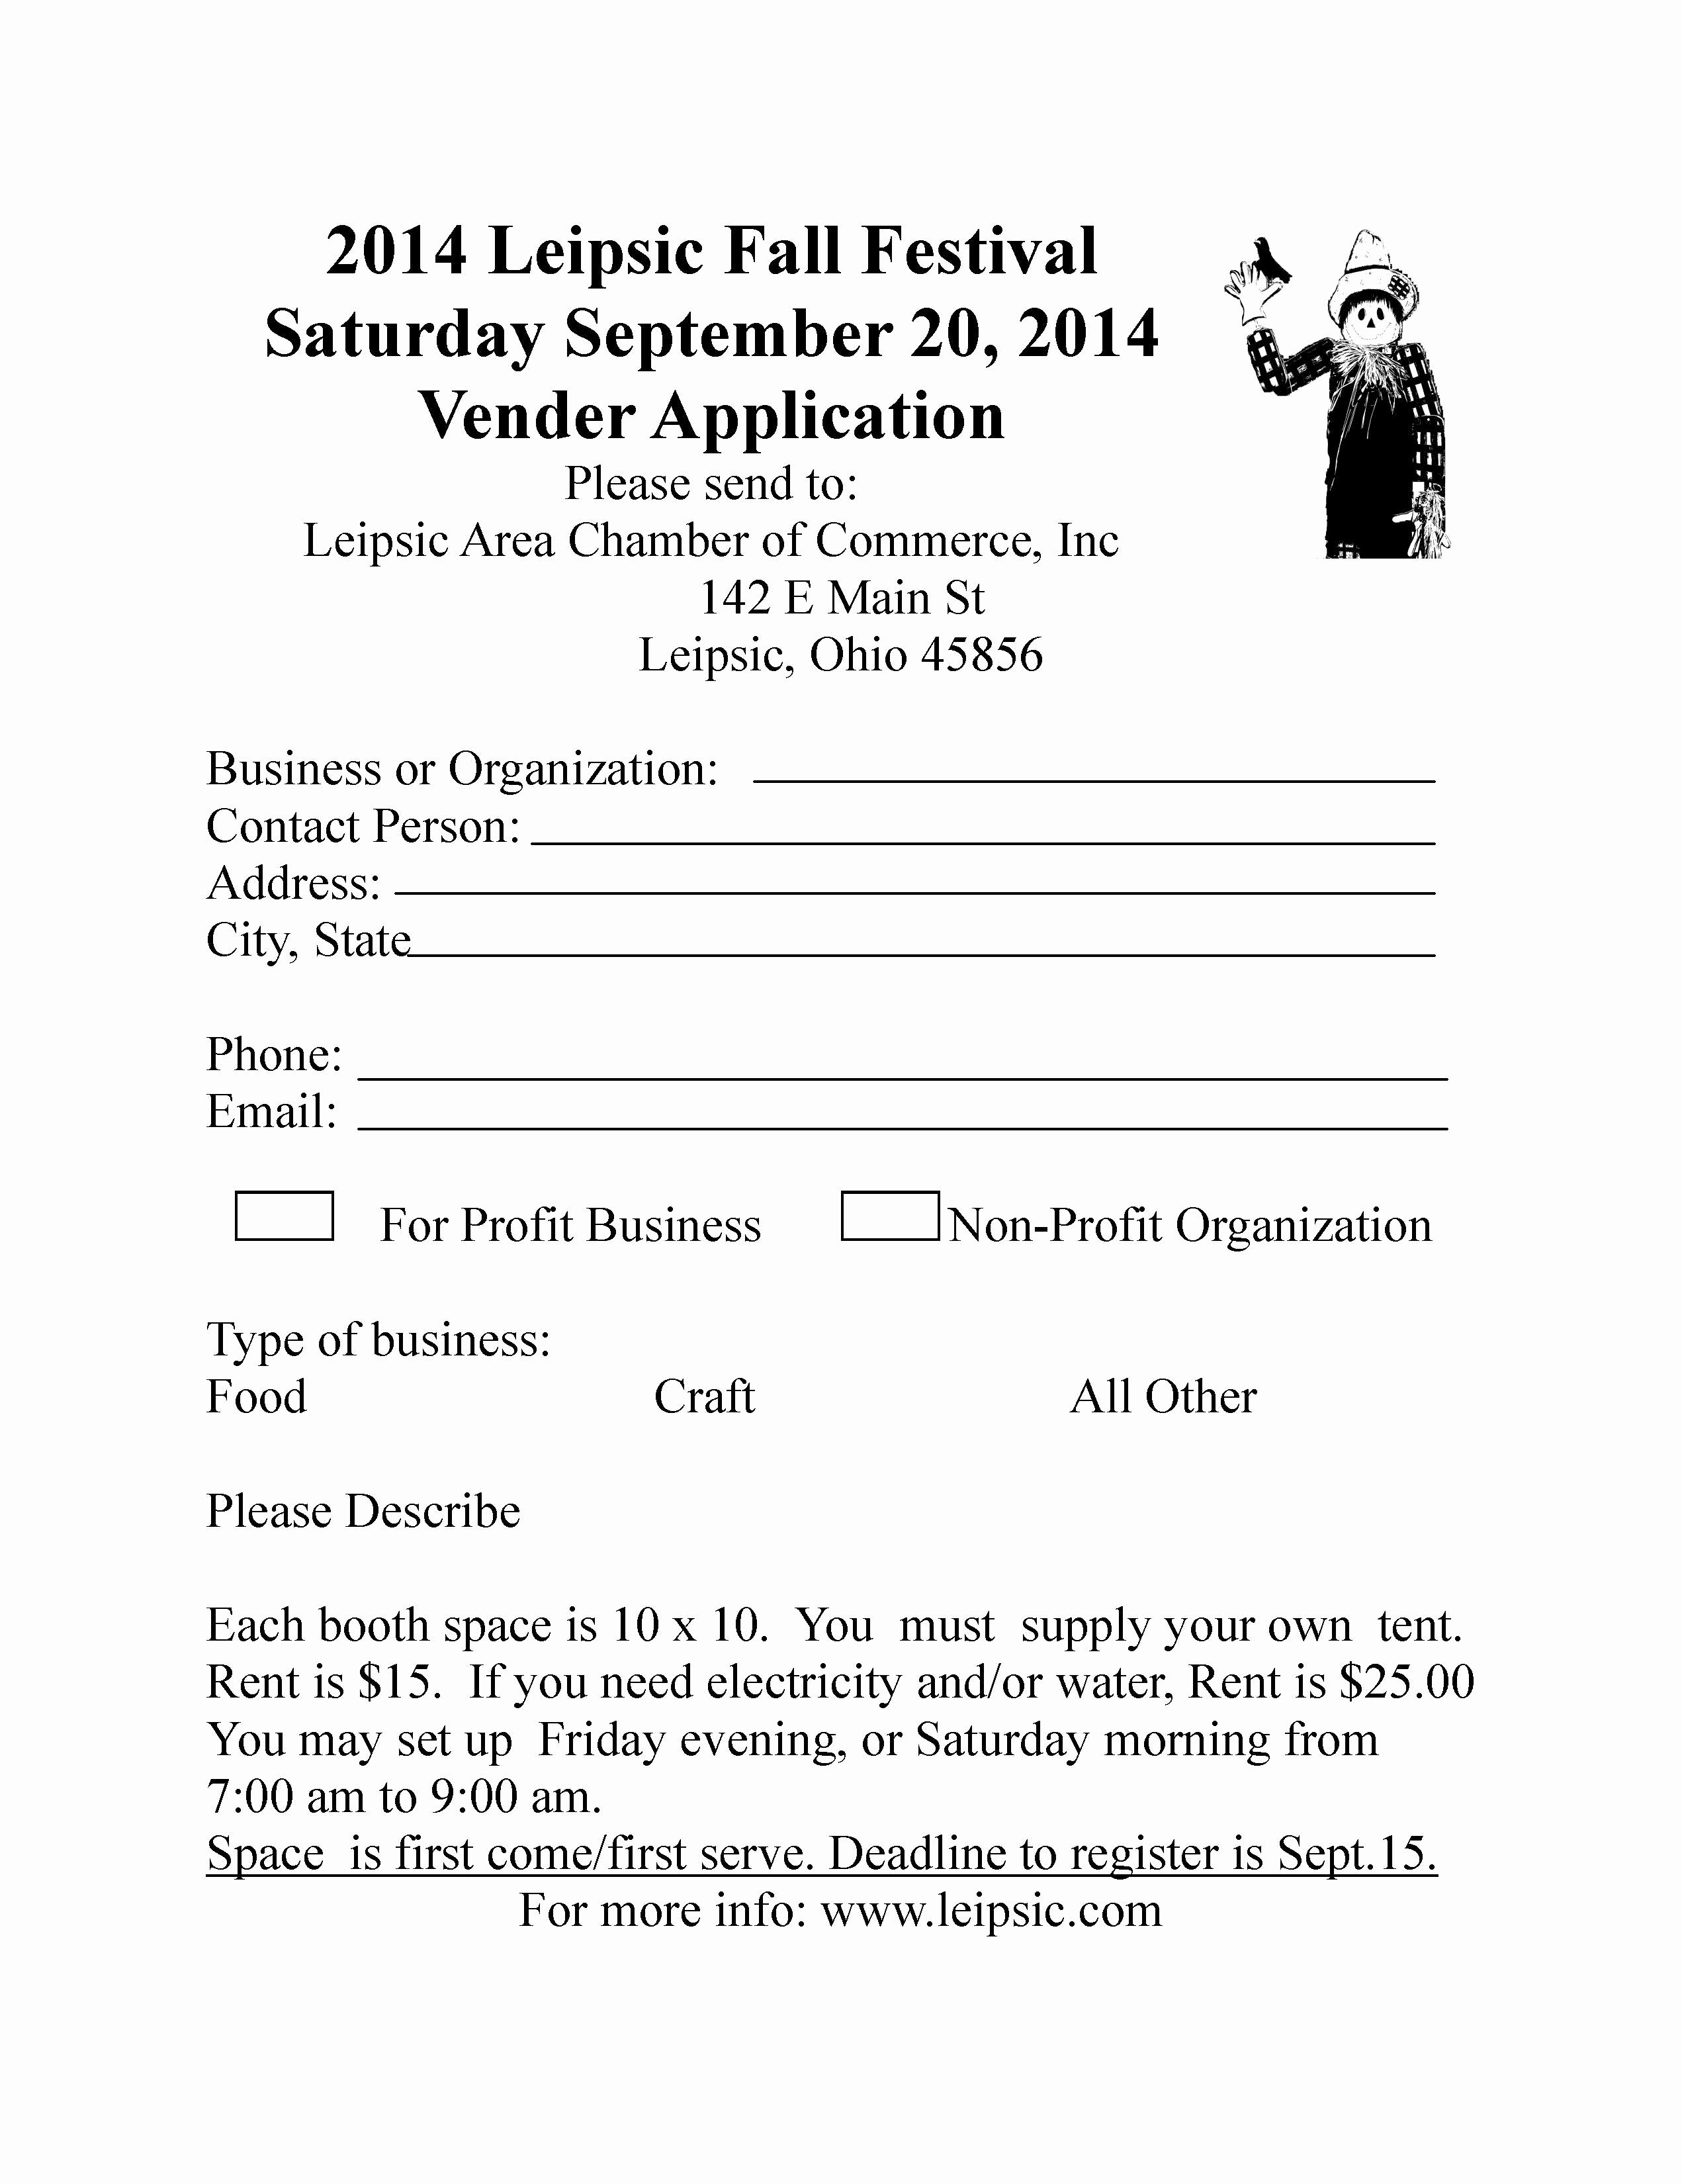 Vendor Information form New Leipsic Fall Festival Information